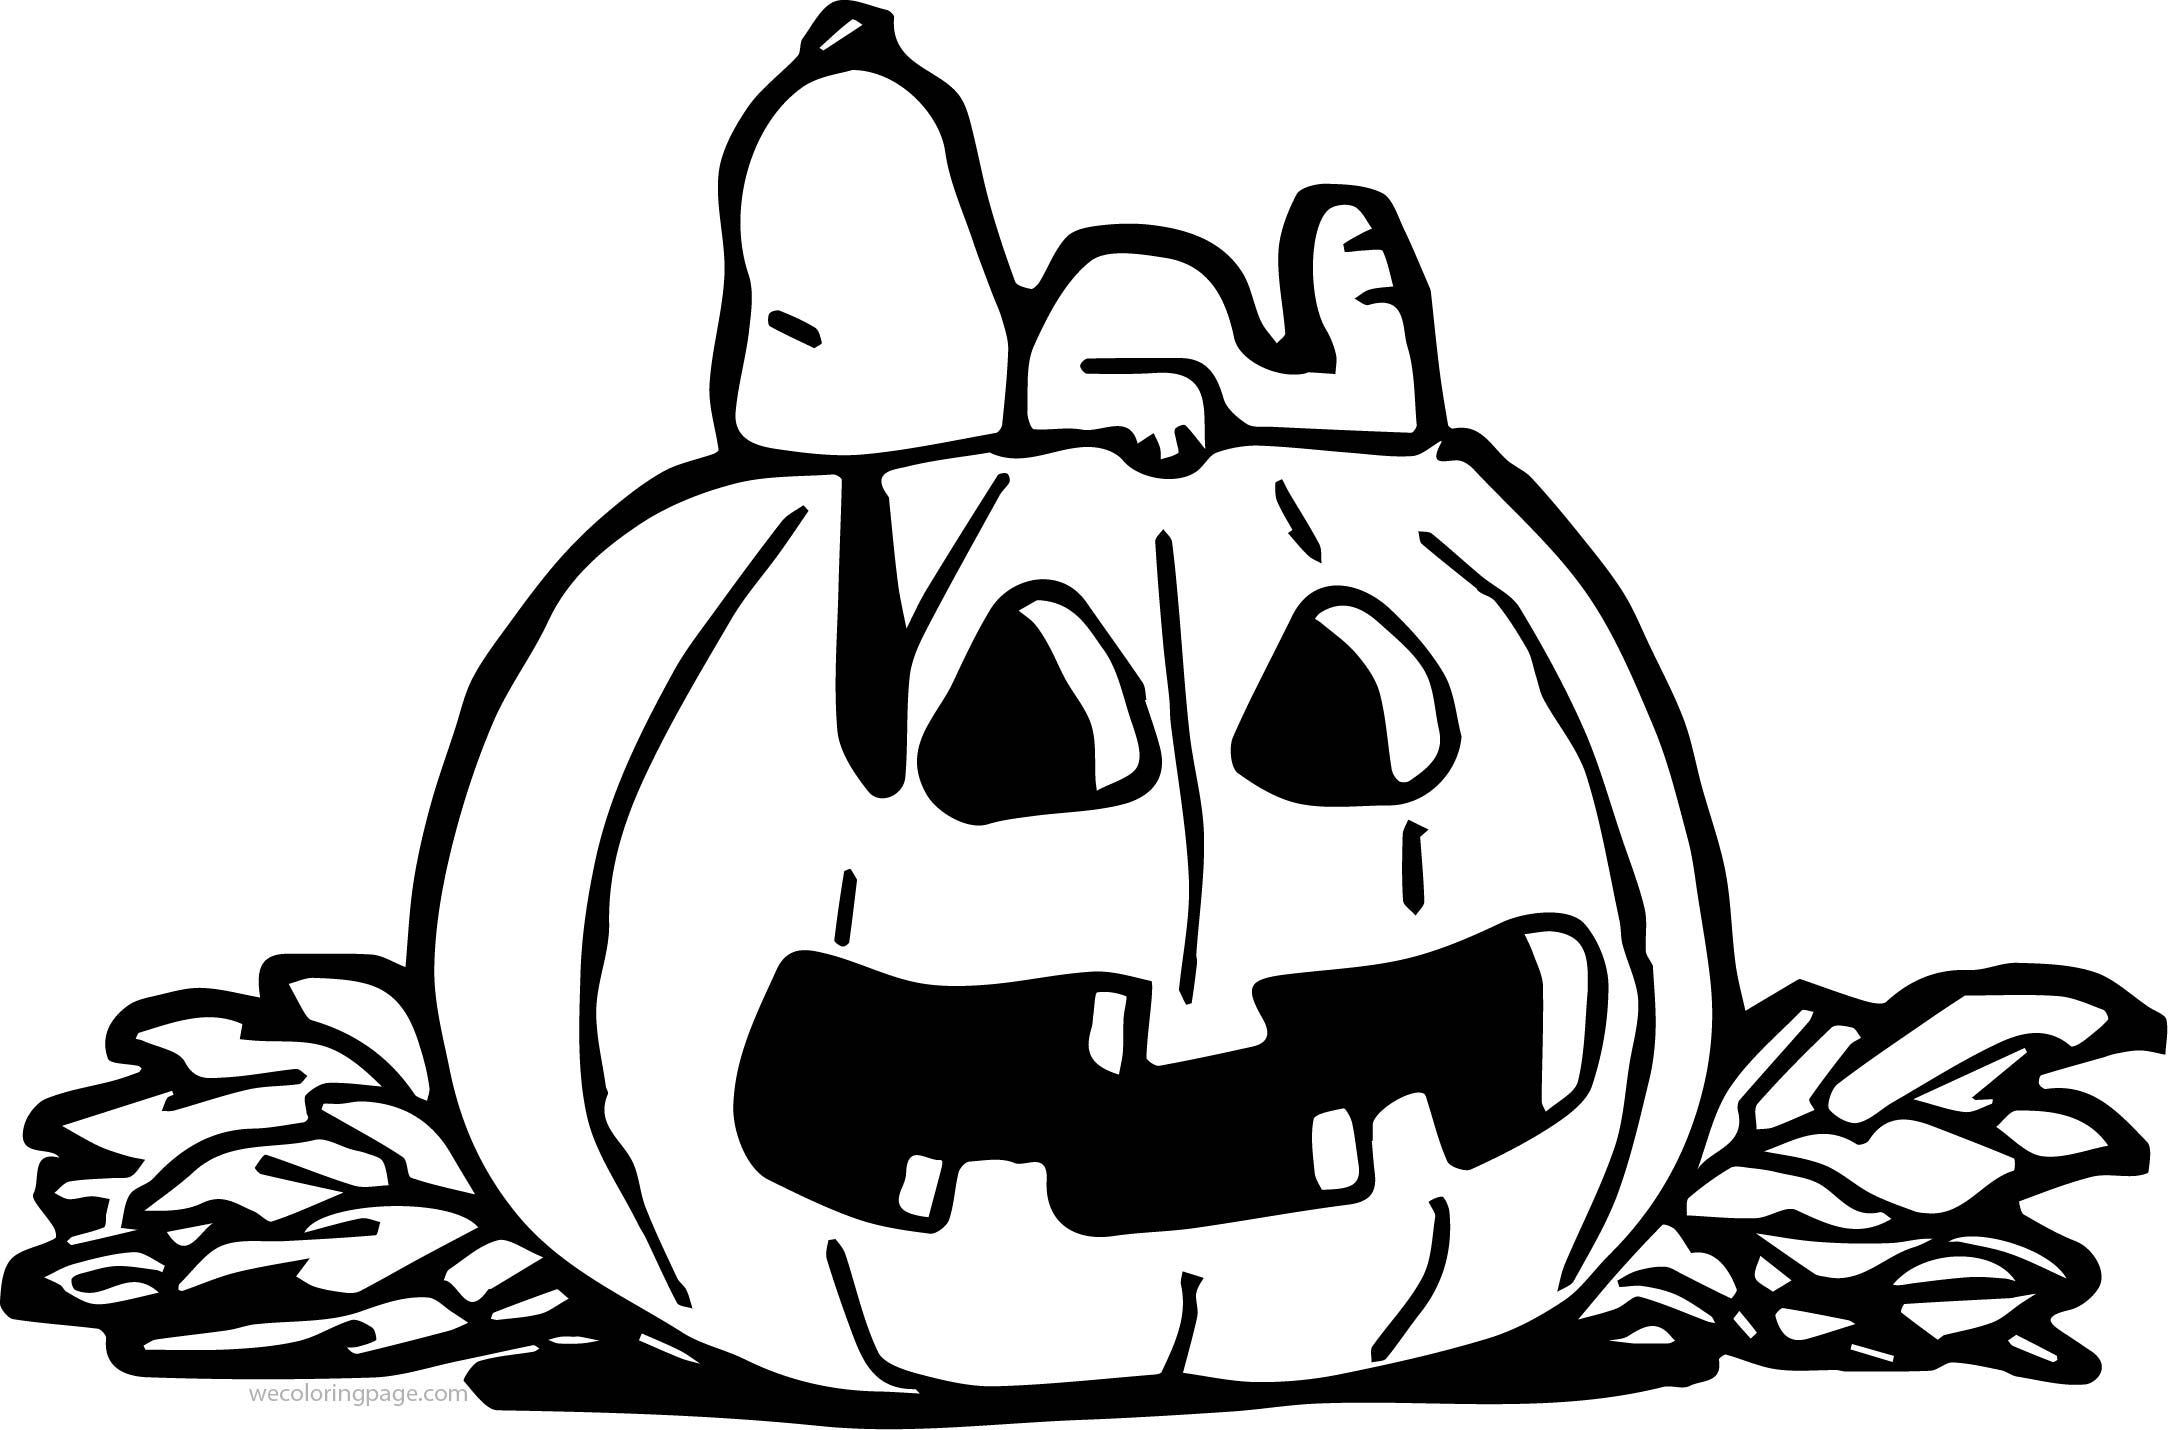 Cool halloween snoopy pumpkin coloring page tattoos snoopy